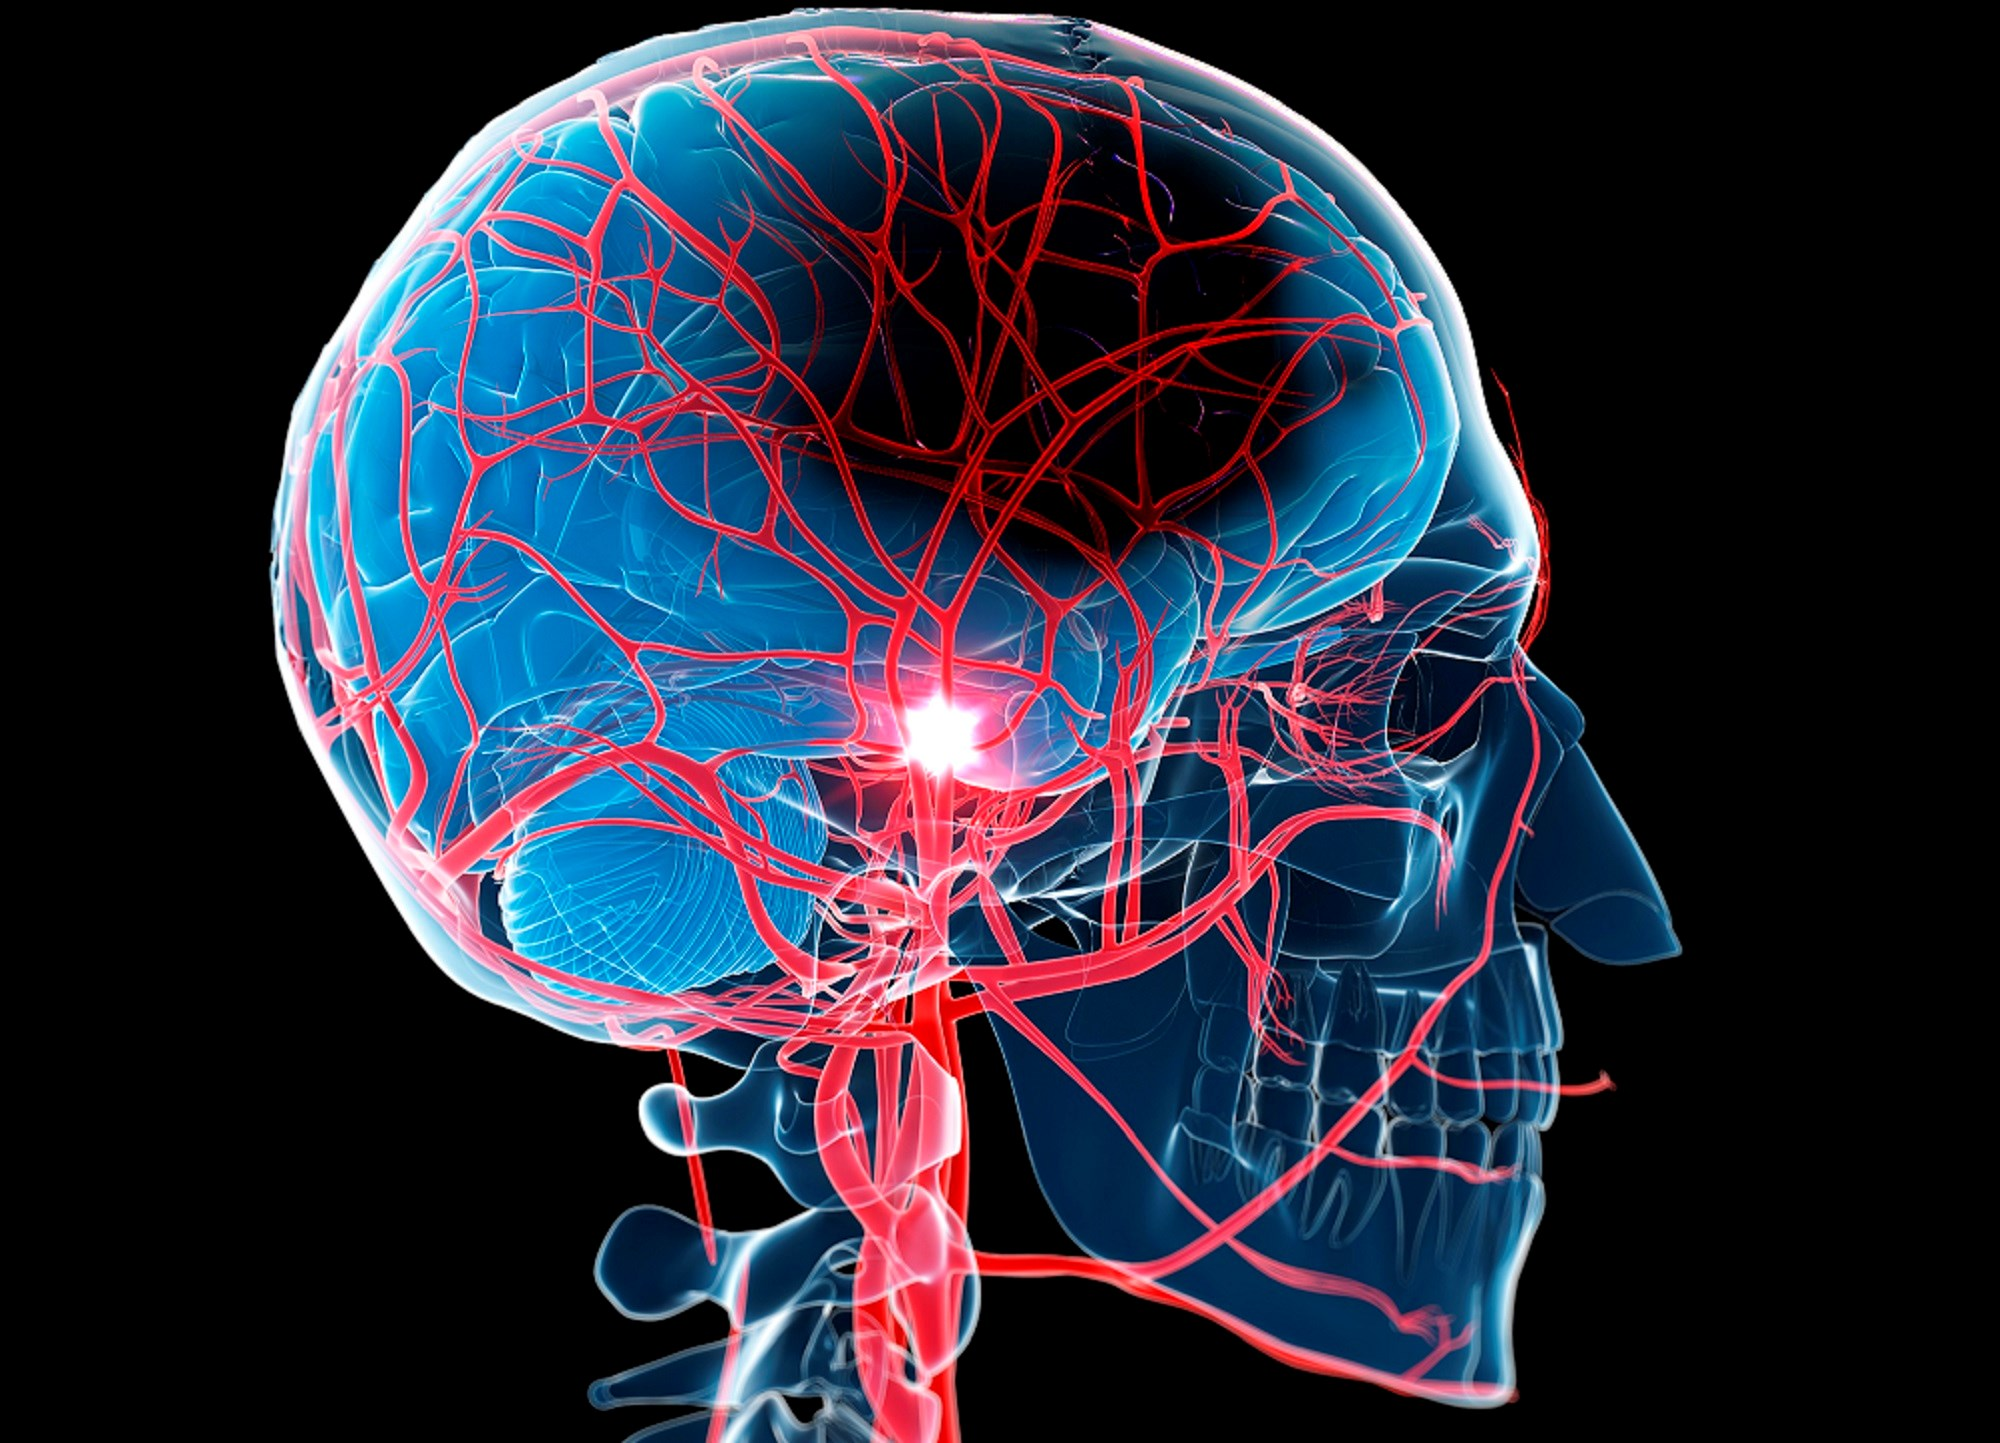 Improved Outcomes With New Protocol for Treating Acute Ischemic Stroke